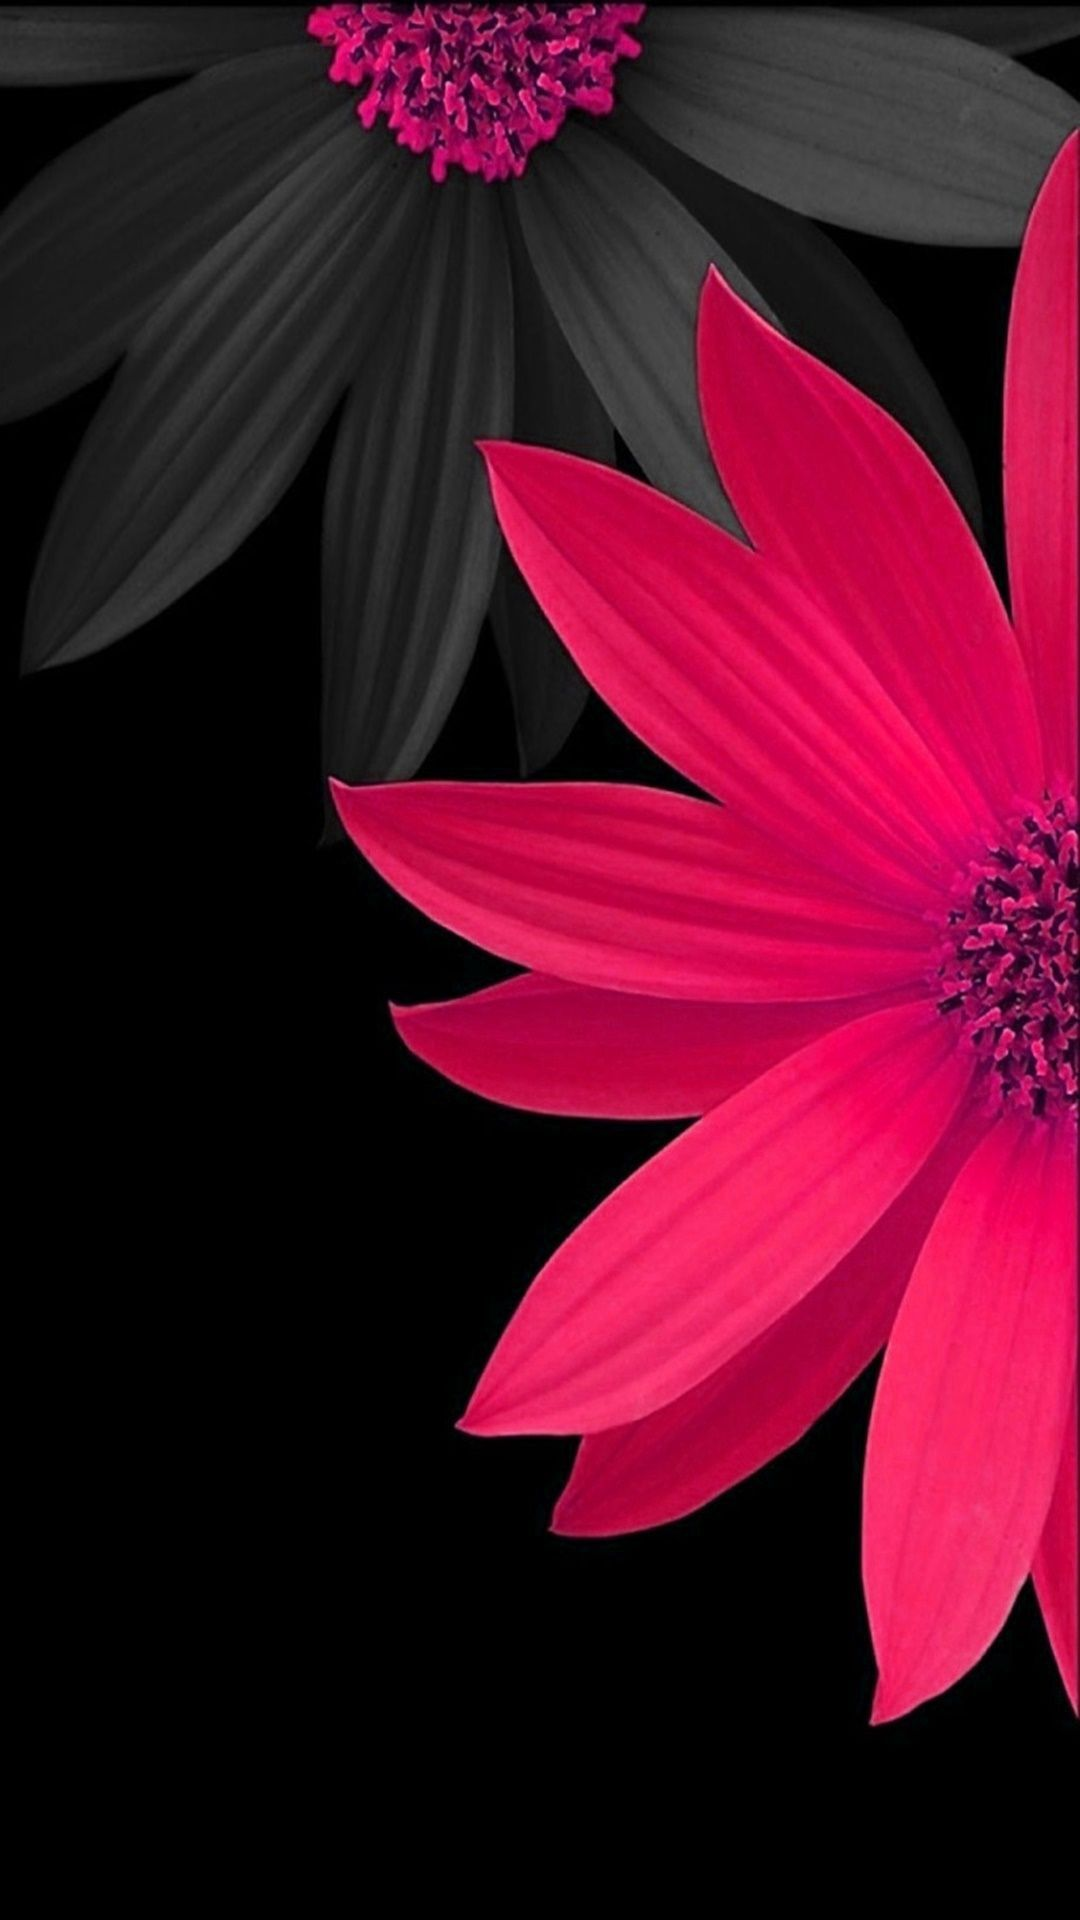 Flower Hd Iphone Wallpapers For Iphone Wallpaper On Hupages Com If You Like It Dont F Pink Flowers Wallpaper Beautiful Flowers Wallpapers Beautiful Wallpapers